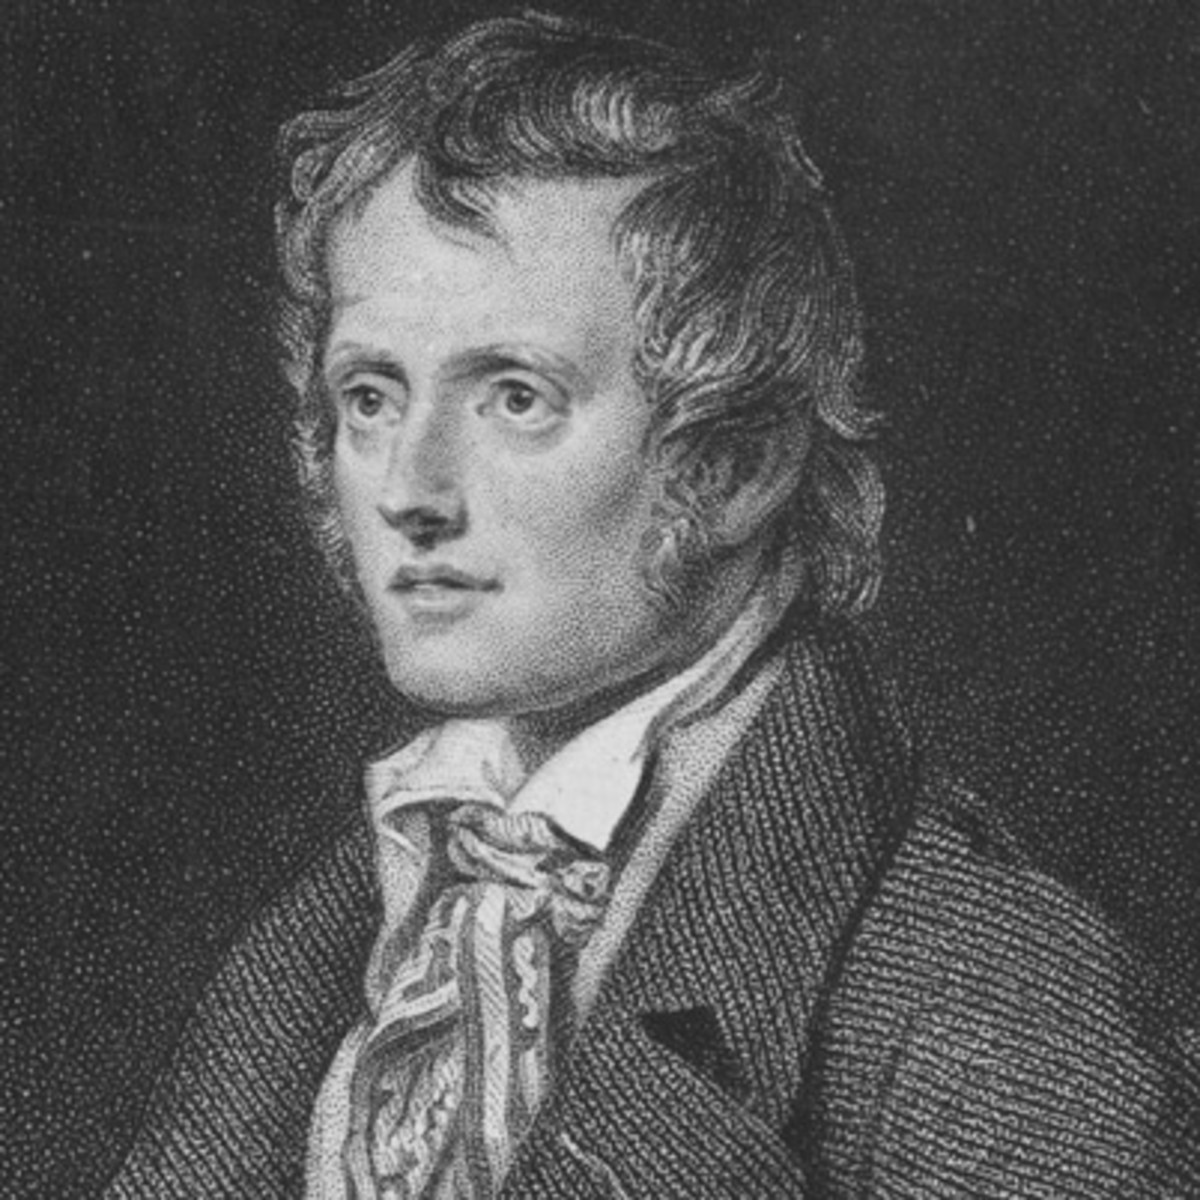 a biography of john clare John gallas fighting the biography of john clare how dull and vexing is it, that each man, though free to plough, still turns the self-same ditch i looked for more.